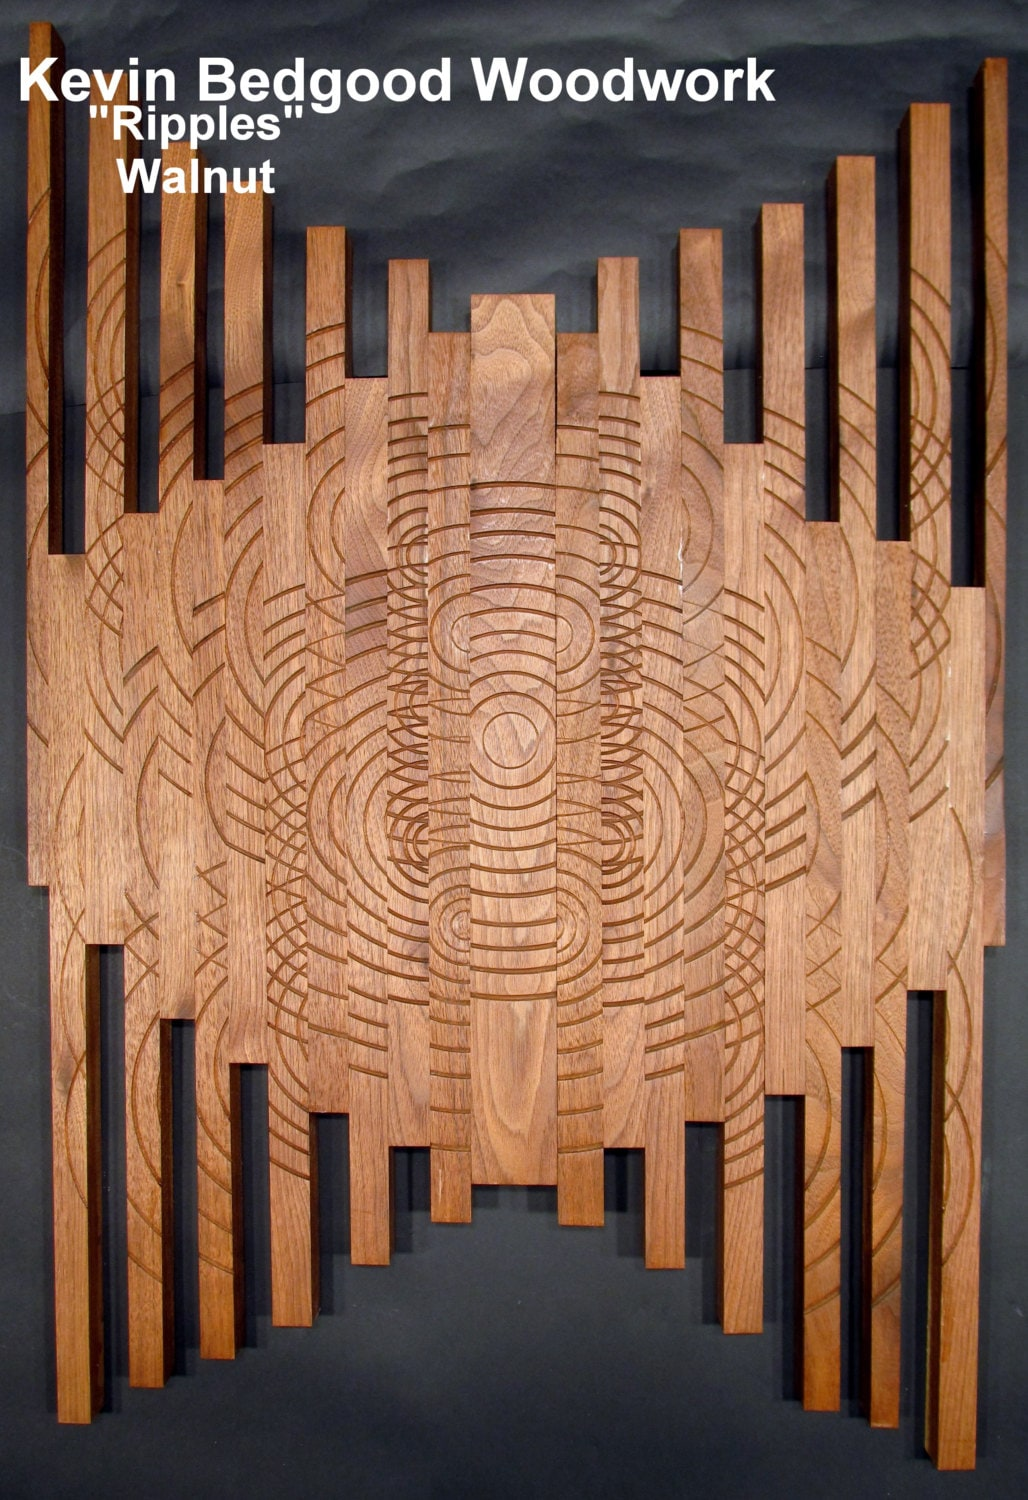 Sculpture Ripples Turned wood Lathe Sculpted Artwork Wall Hanging Wall Art & Sculpture Ripples Turned wood Lathe Sculpted Artwork Wall Hanging ...